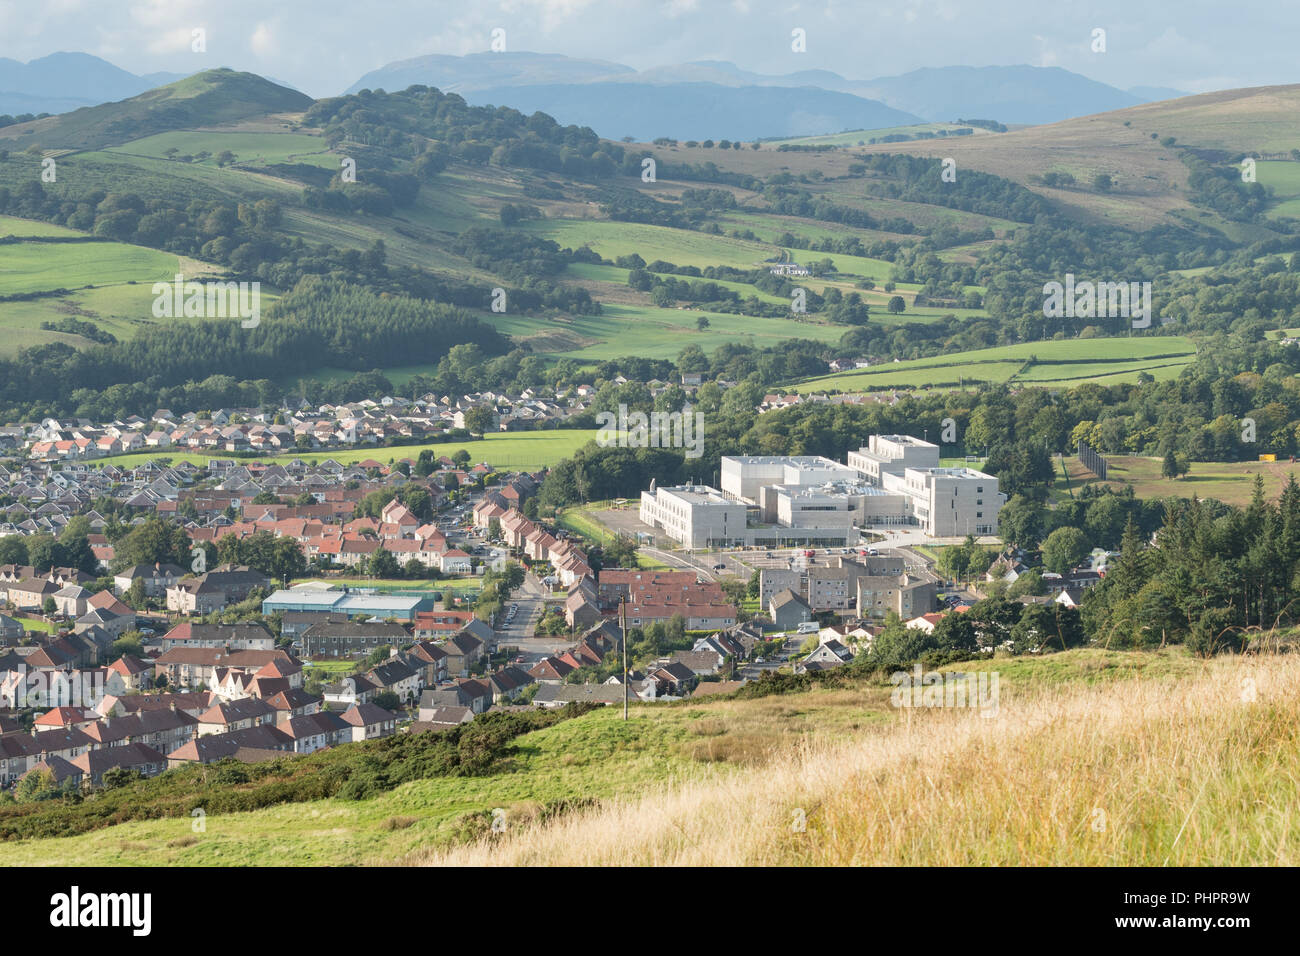 Largs Campus - new school - Largs, Scotland, UK - Stock Image